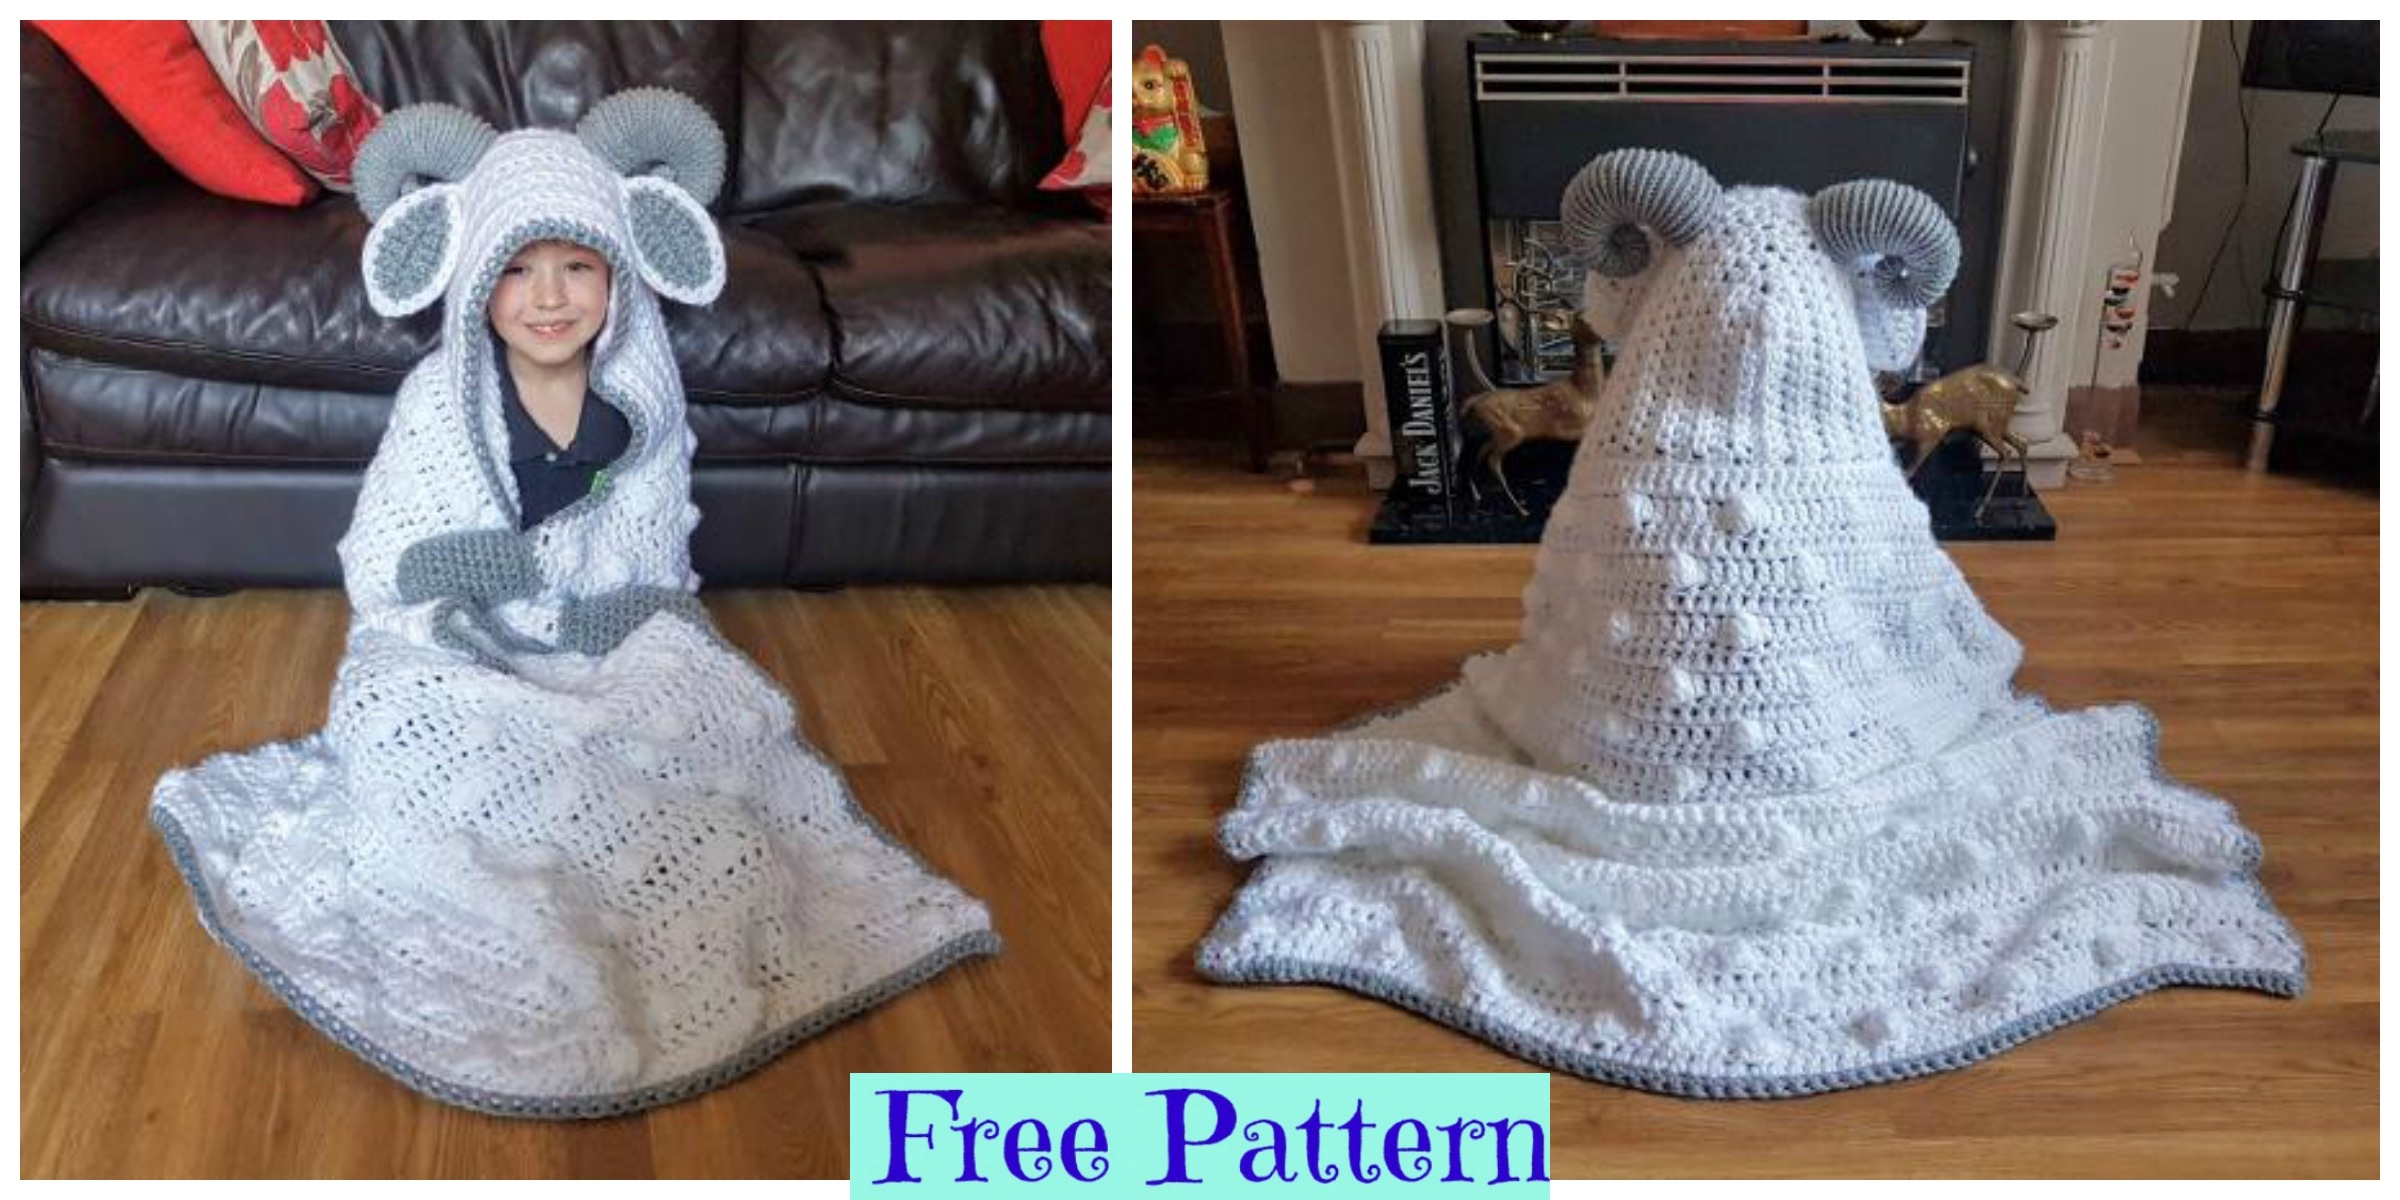 Crochet Hooded Sheep Blanket – Free Pattern